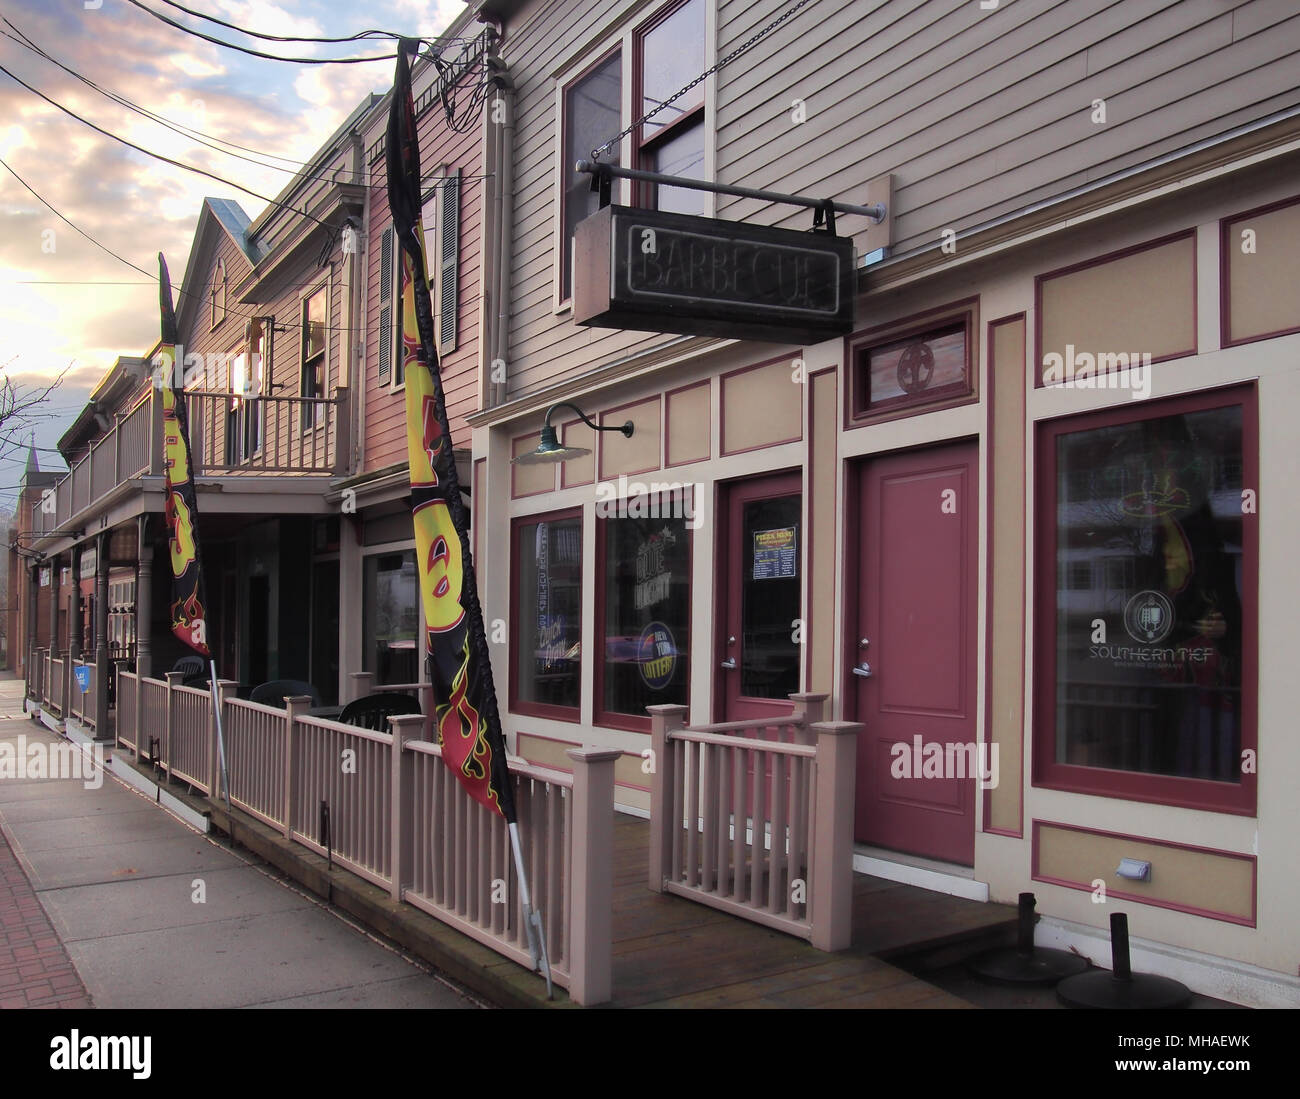 Camillus, New York, USA.  April 28, 2018. Small business along the main street through the small town of Camillus, New York, early morning Stock Photo